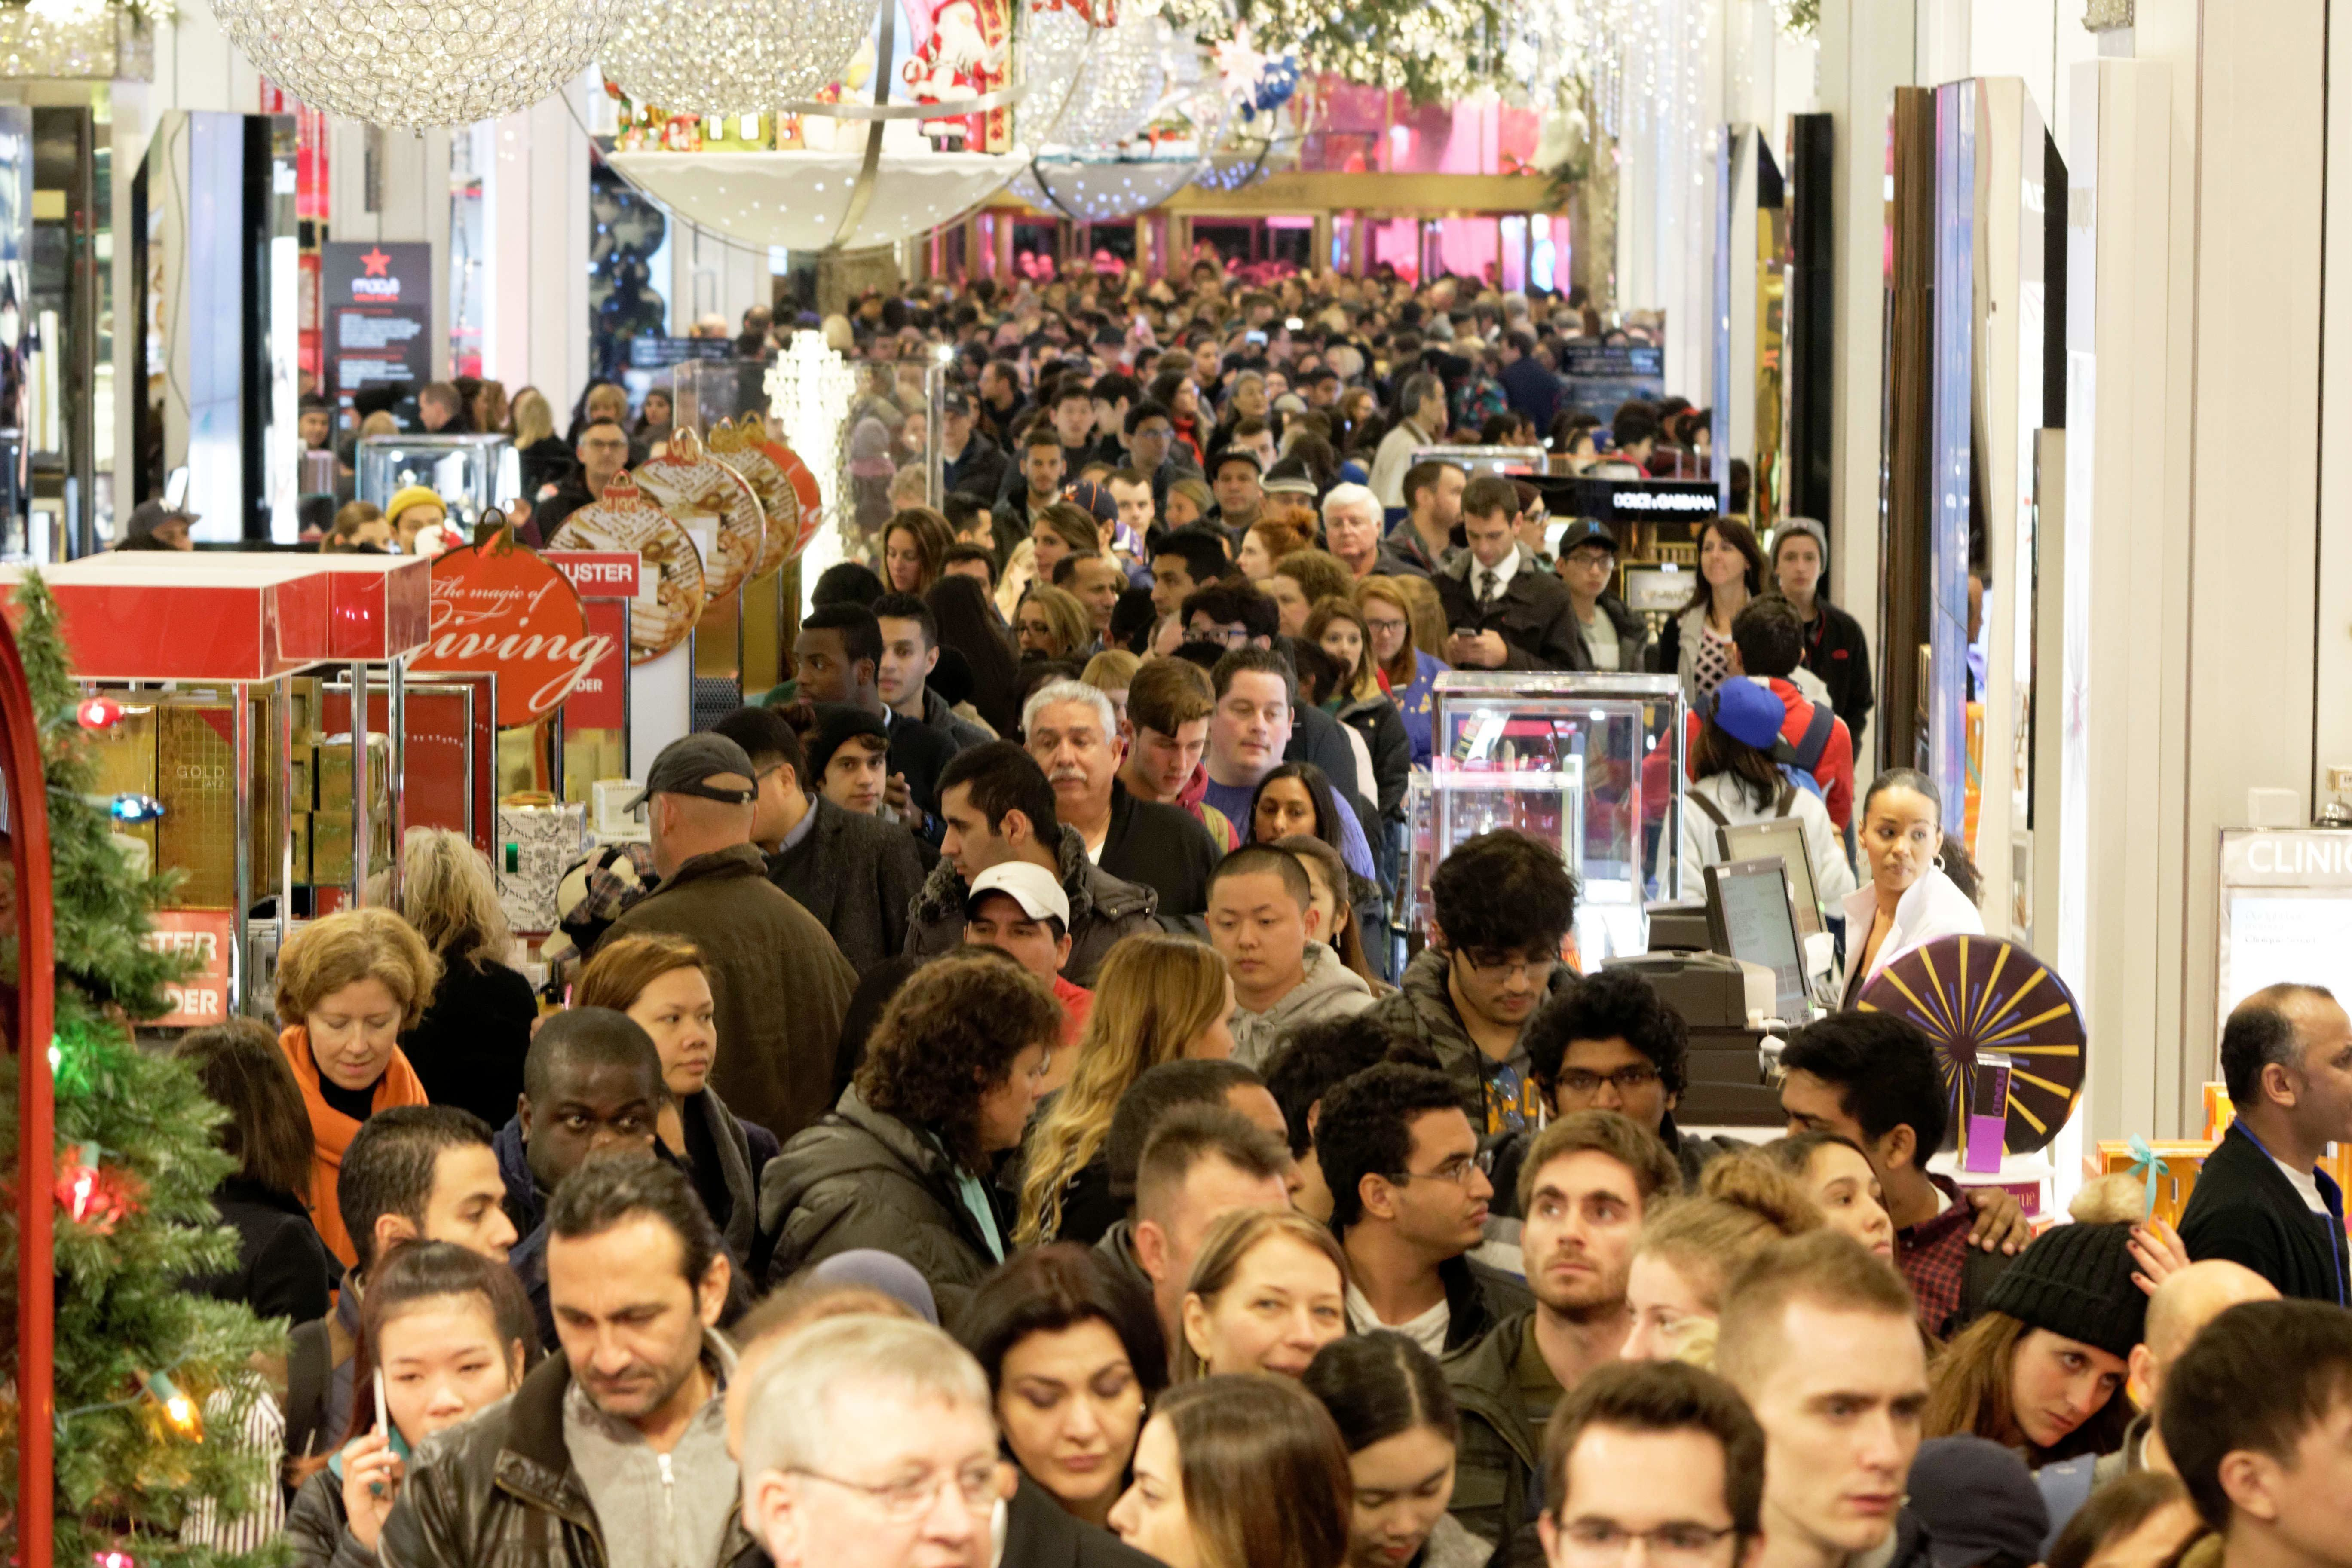 Shoppers crowd the aisles ofMacy's department store in Herald Square, New York, onNov. 26, 2015.